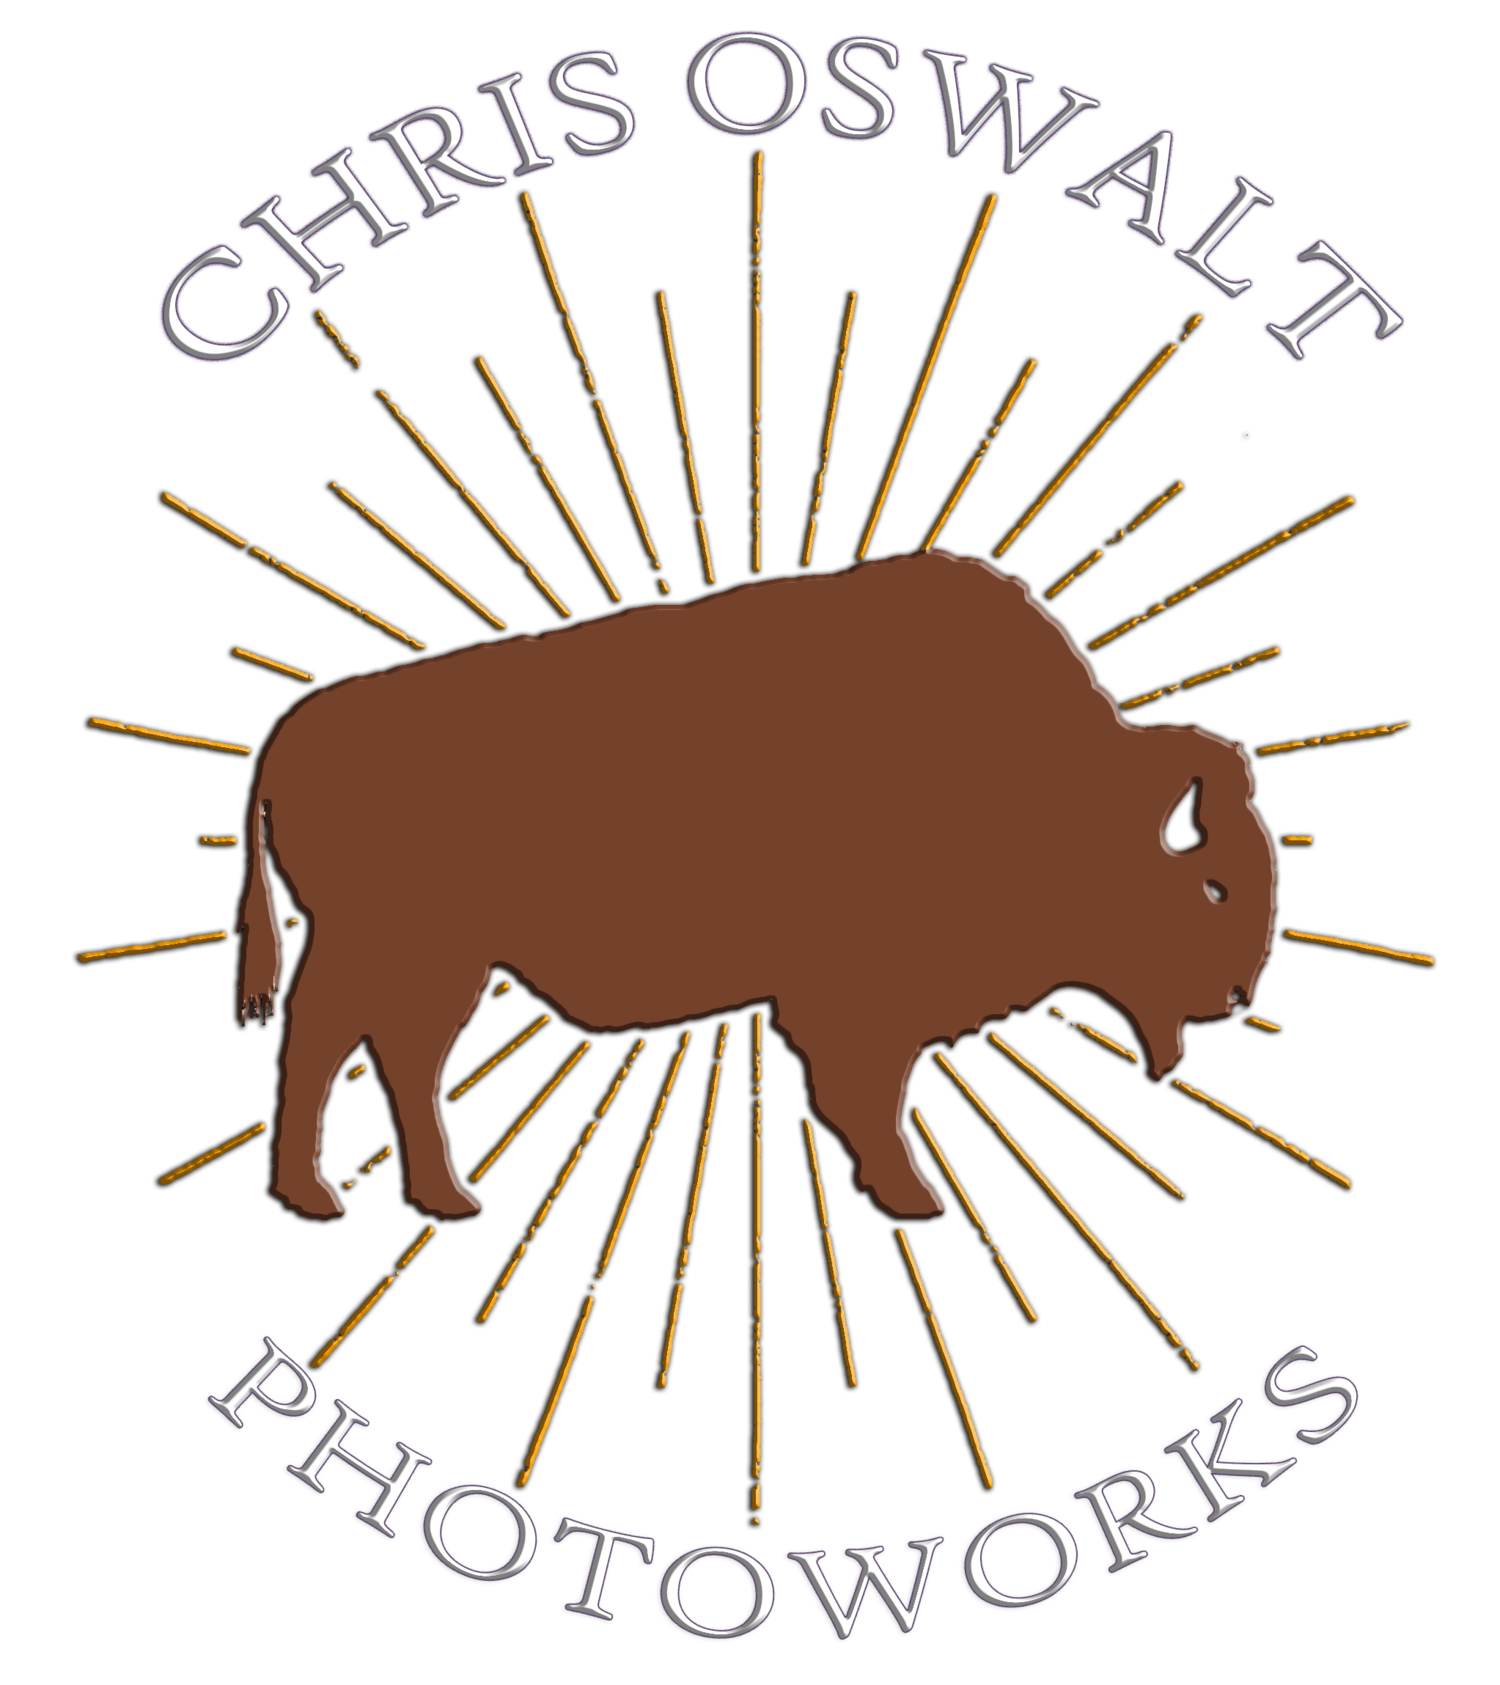 Chris Oswalt Photoworks